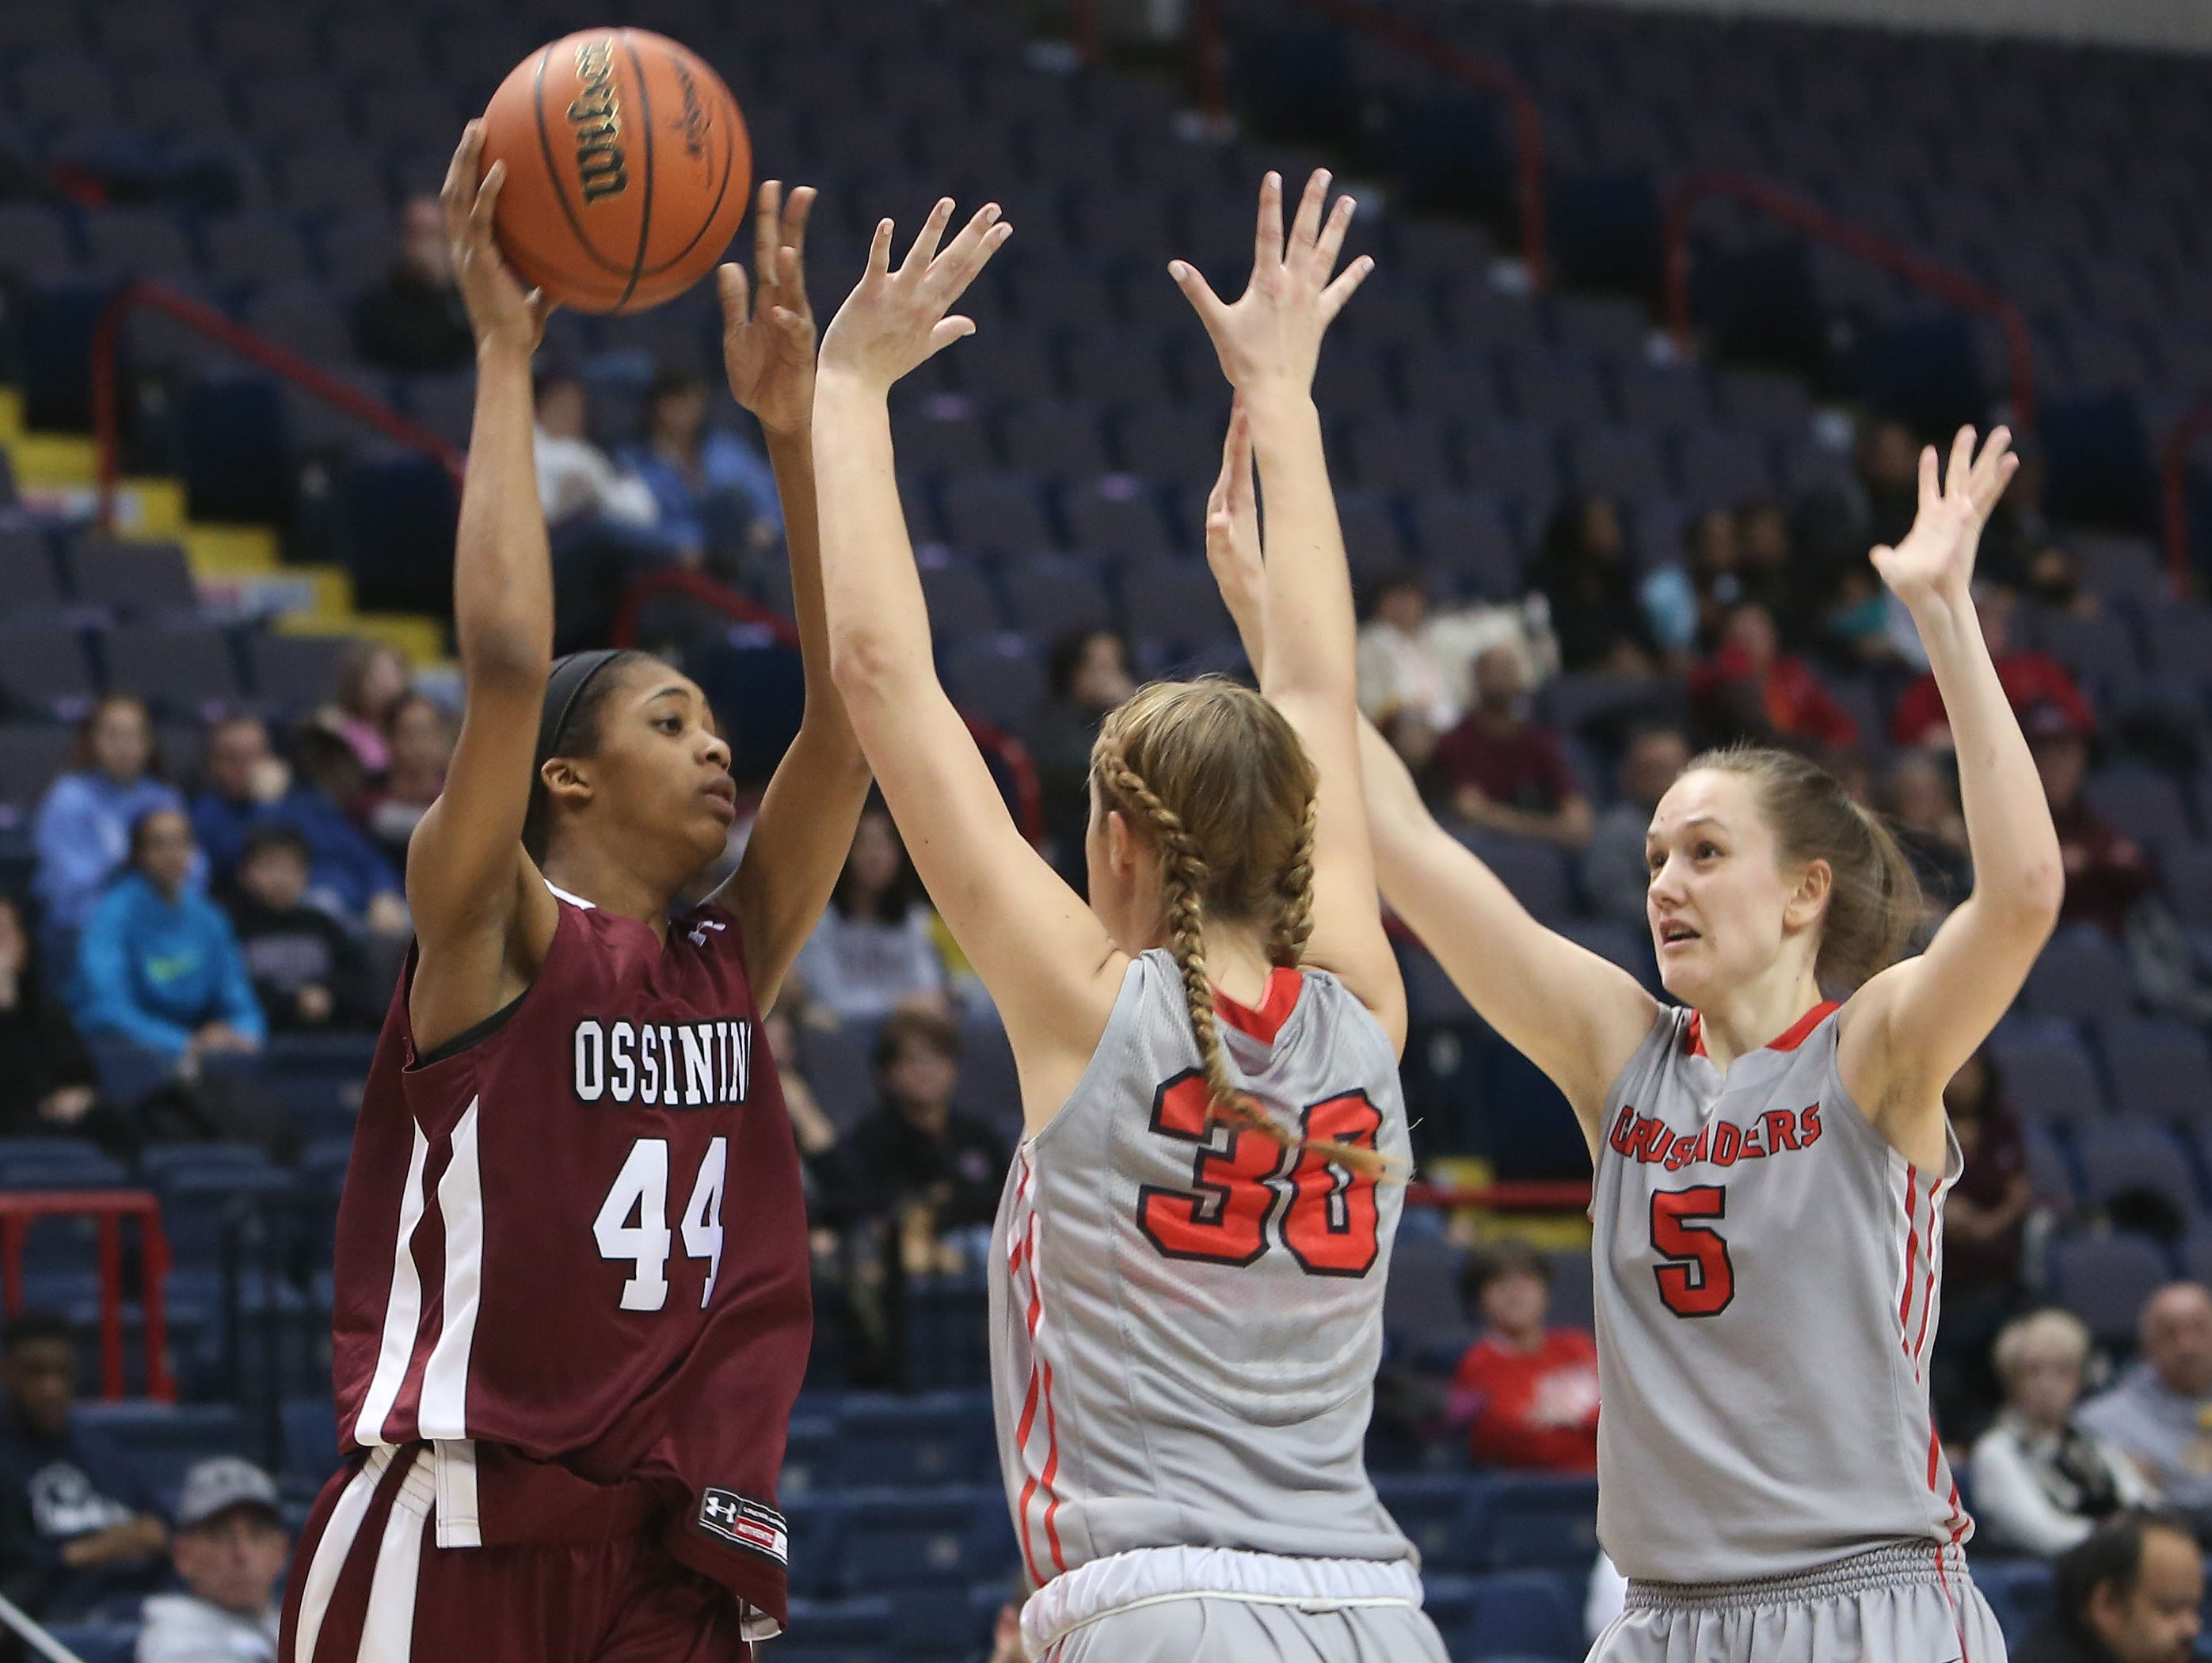 Ossining's Aubrey Griffin (44) looks for an open teammate against Long Island Lutheran's Jenna Siletti (33) during the girls Class A final of the New York State Federation Tournament of Champions at the Times Union Center in Albany March 18, 2016.